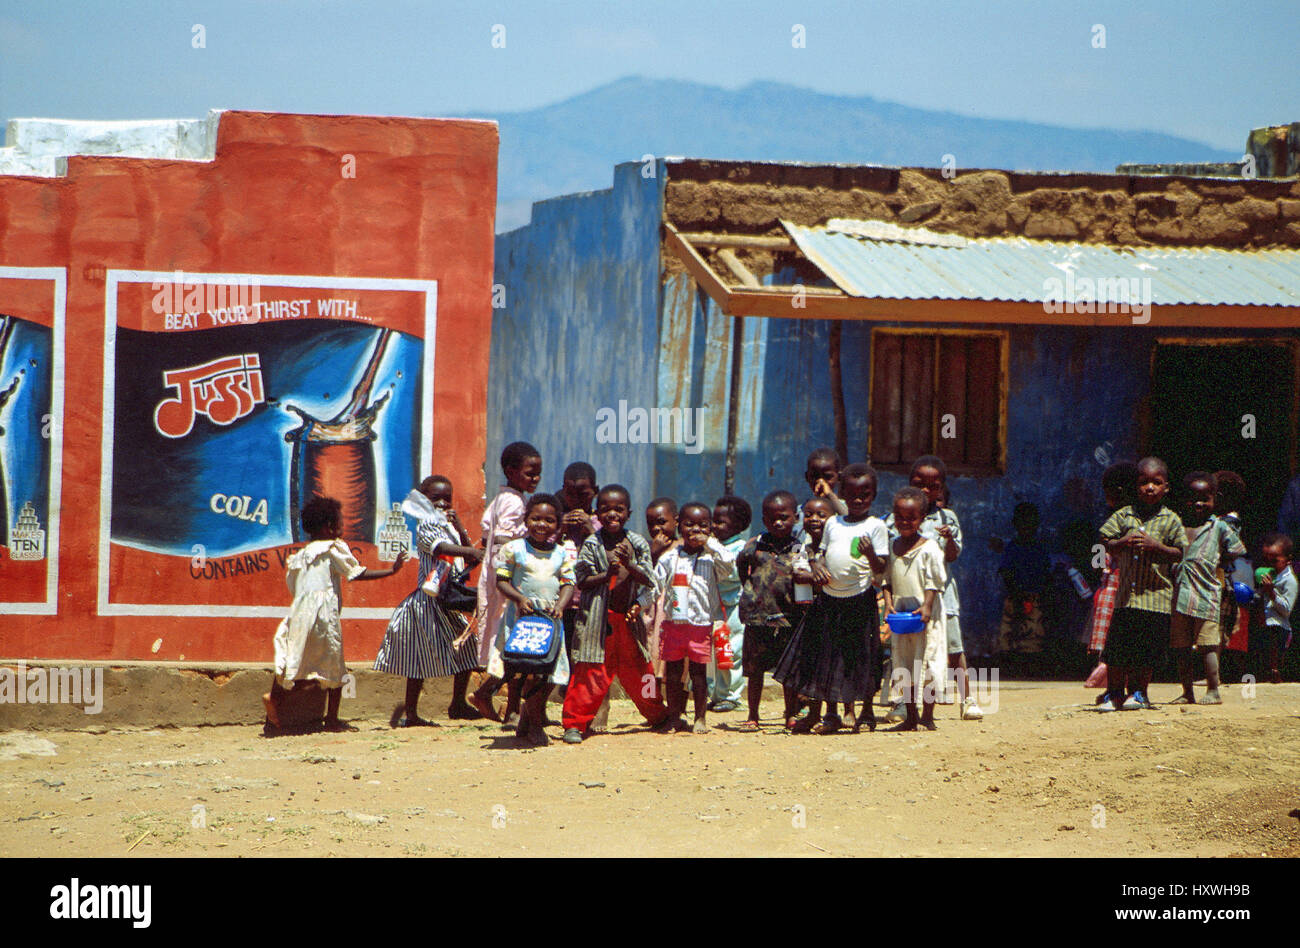 Children gathered in a roadside village, Malawi, Central Africa - Stock Image